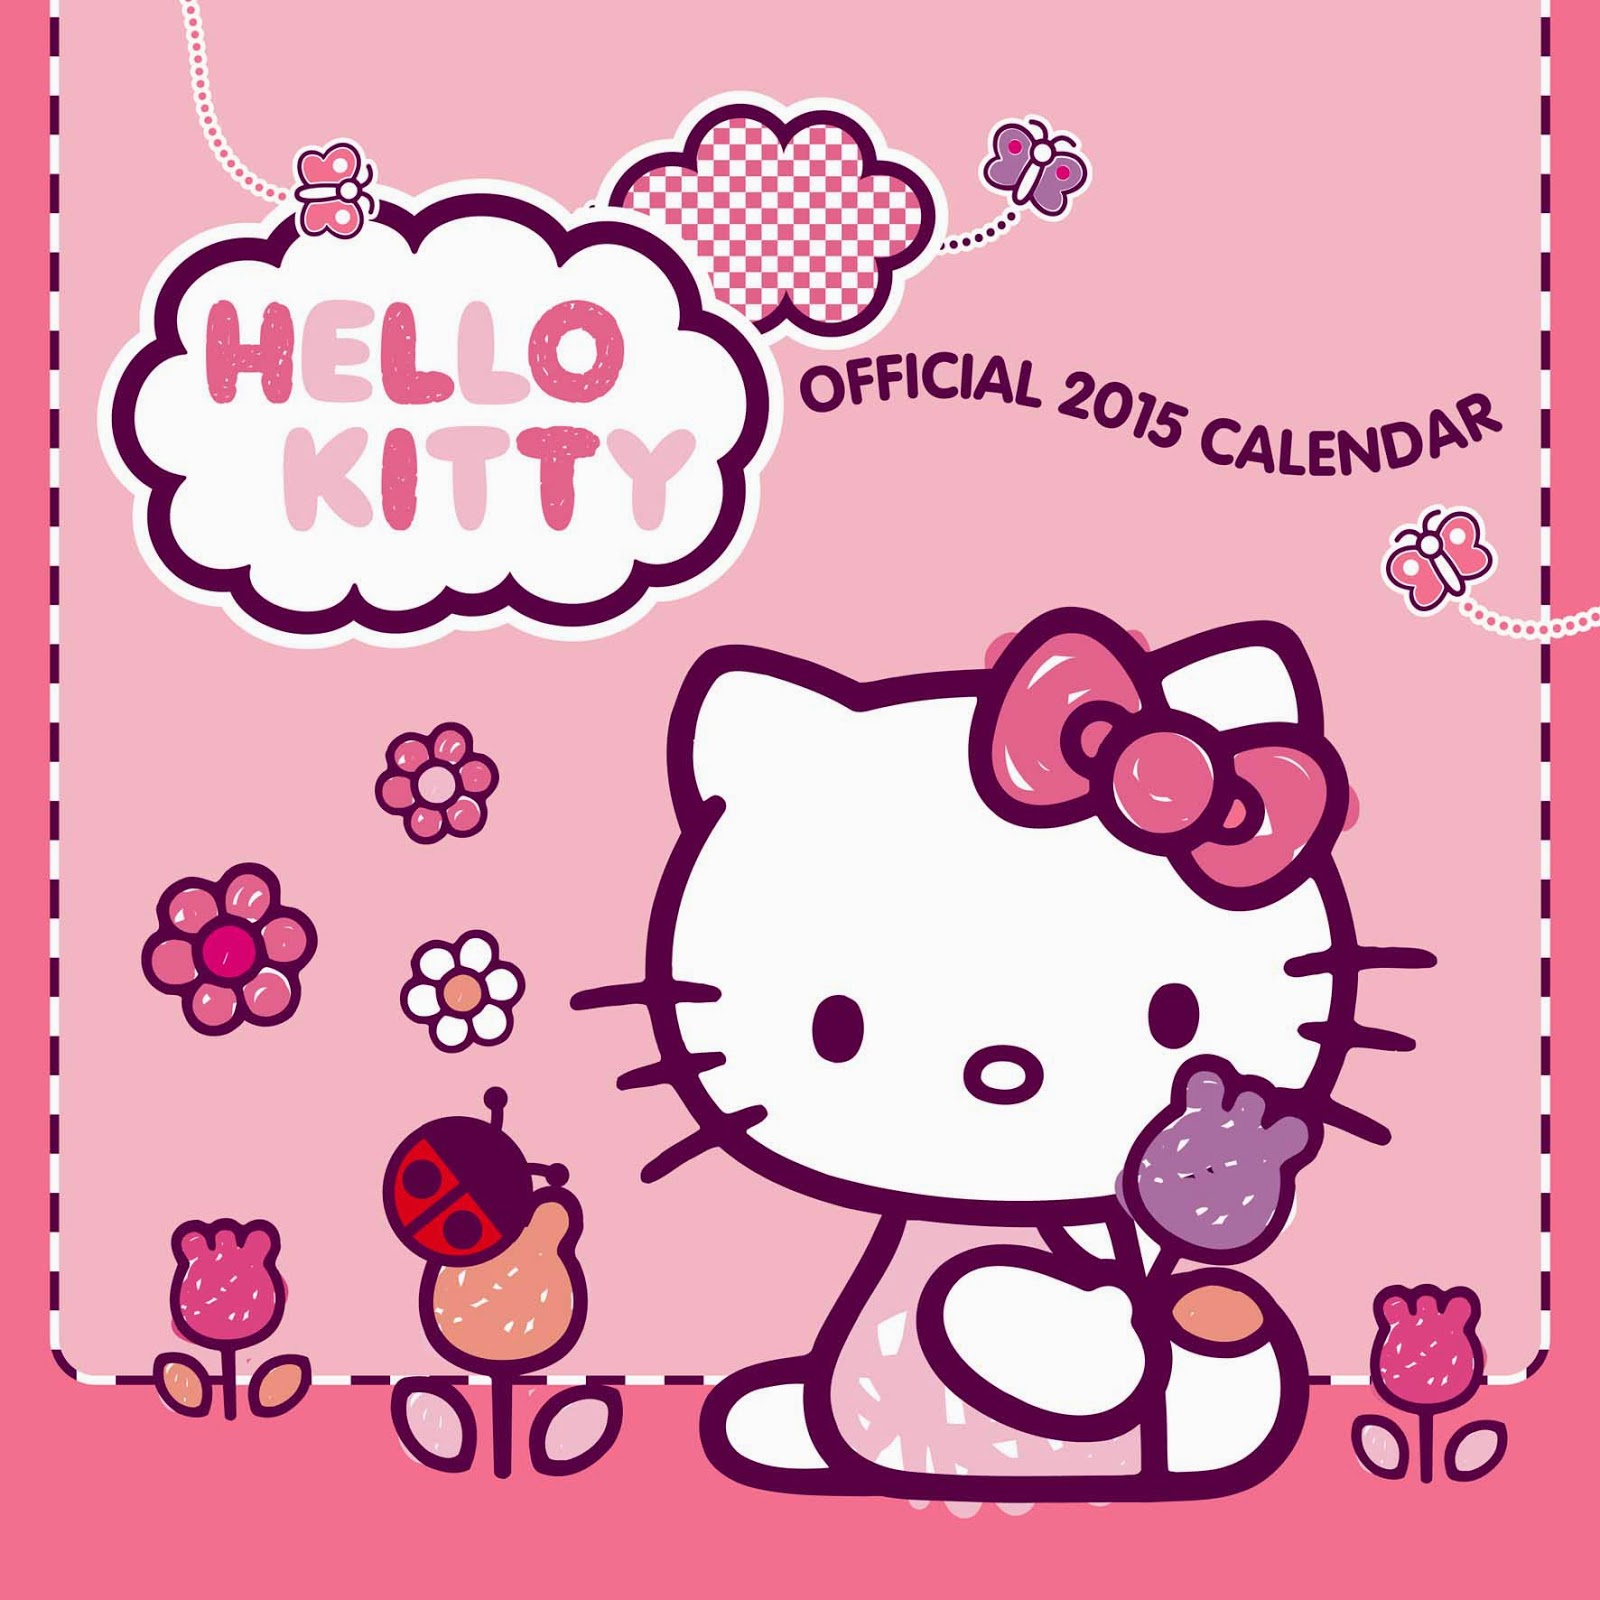 48+] Wallpaper Hello Kitty 2015 on WallpaperSafari